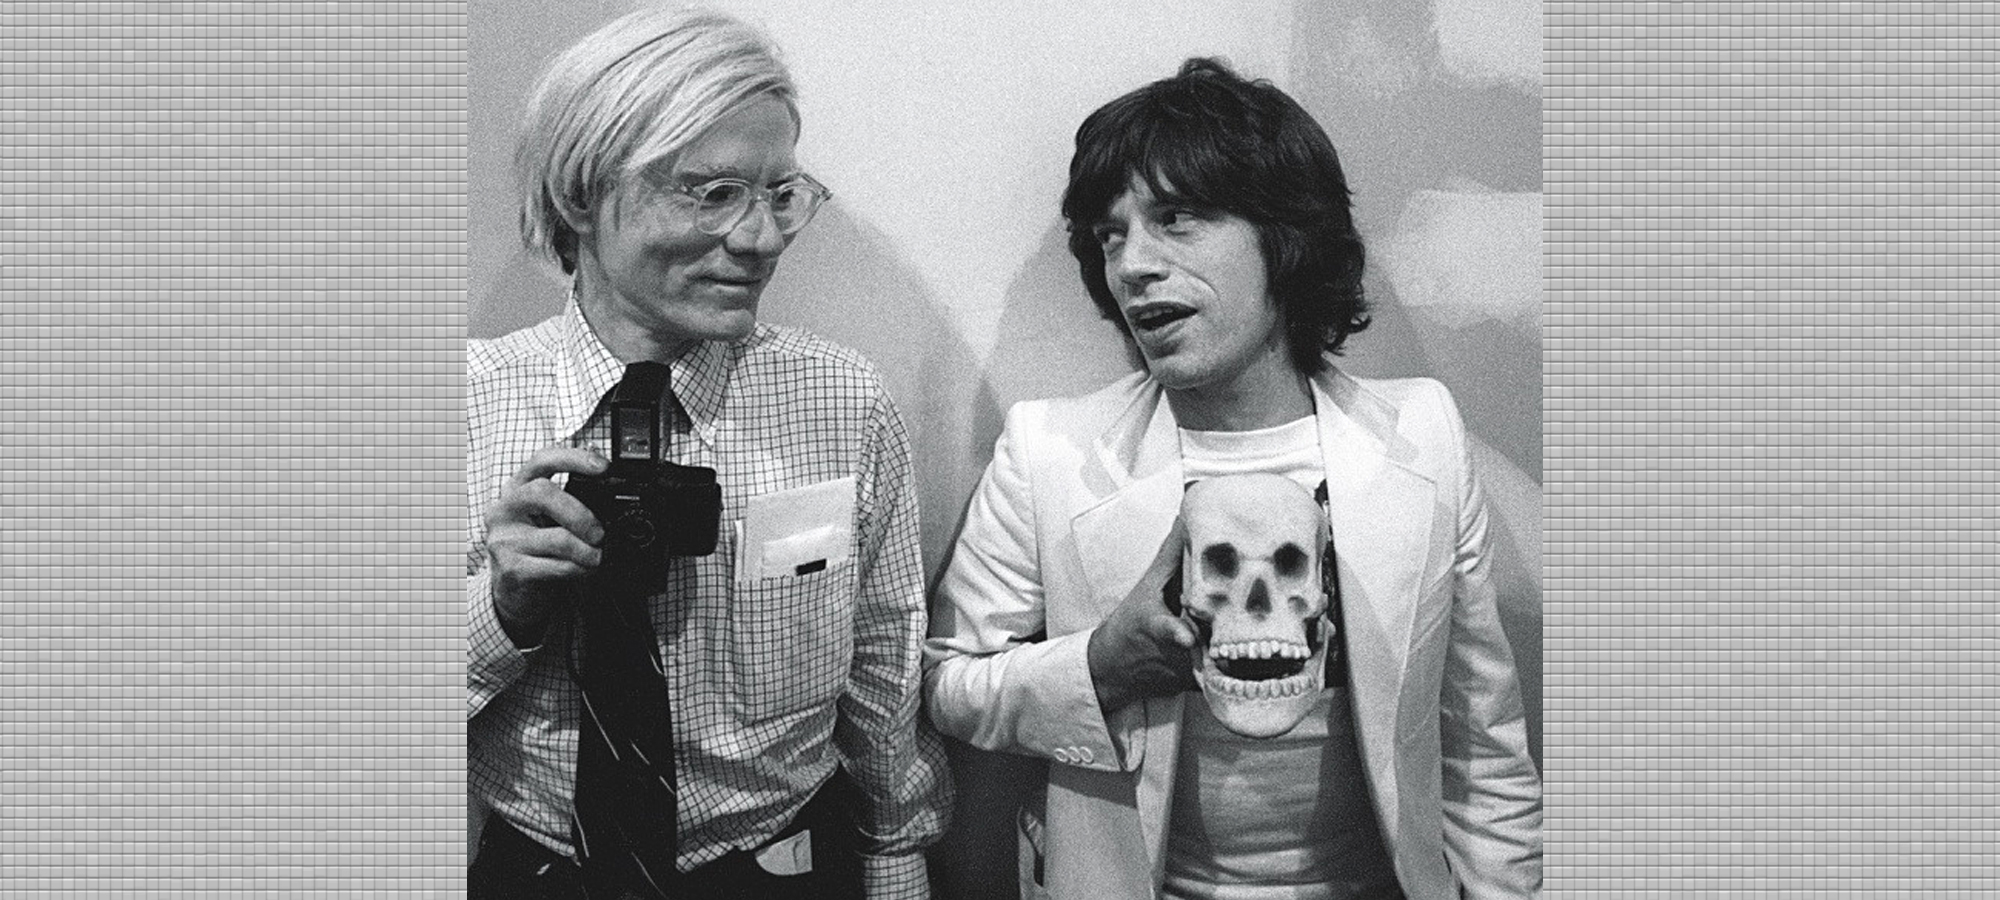 Andy Warhol and Mick Jagger.  HipQuotient.com